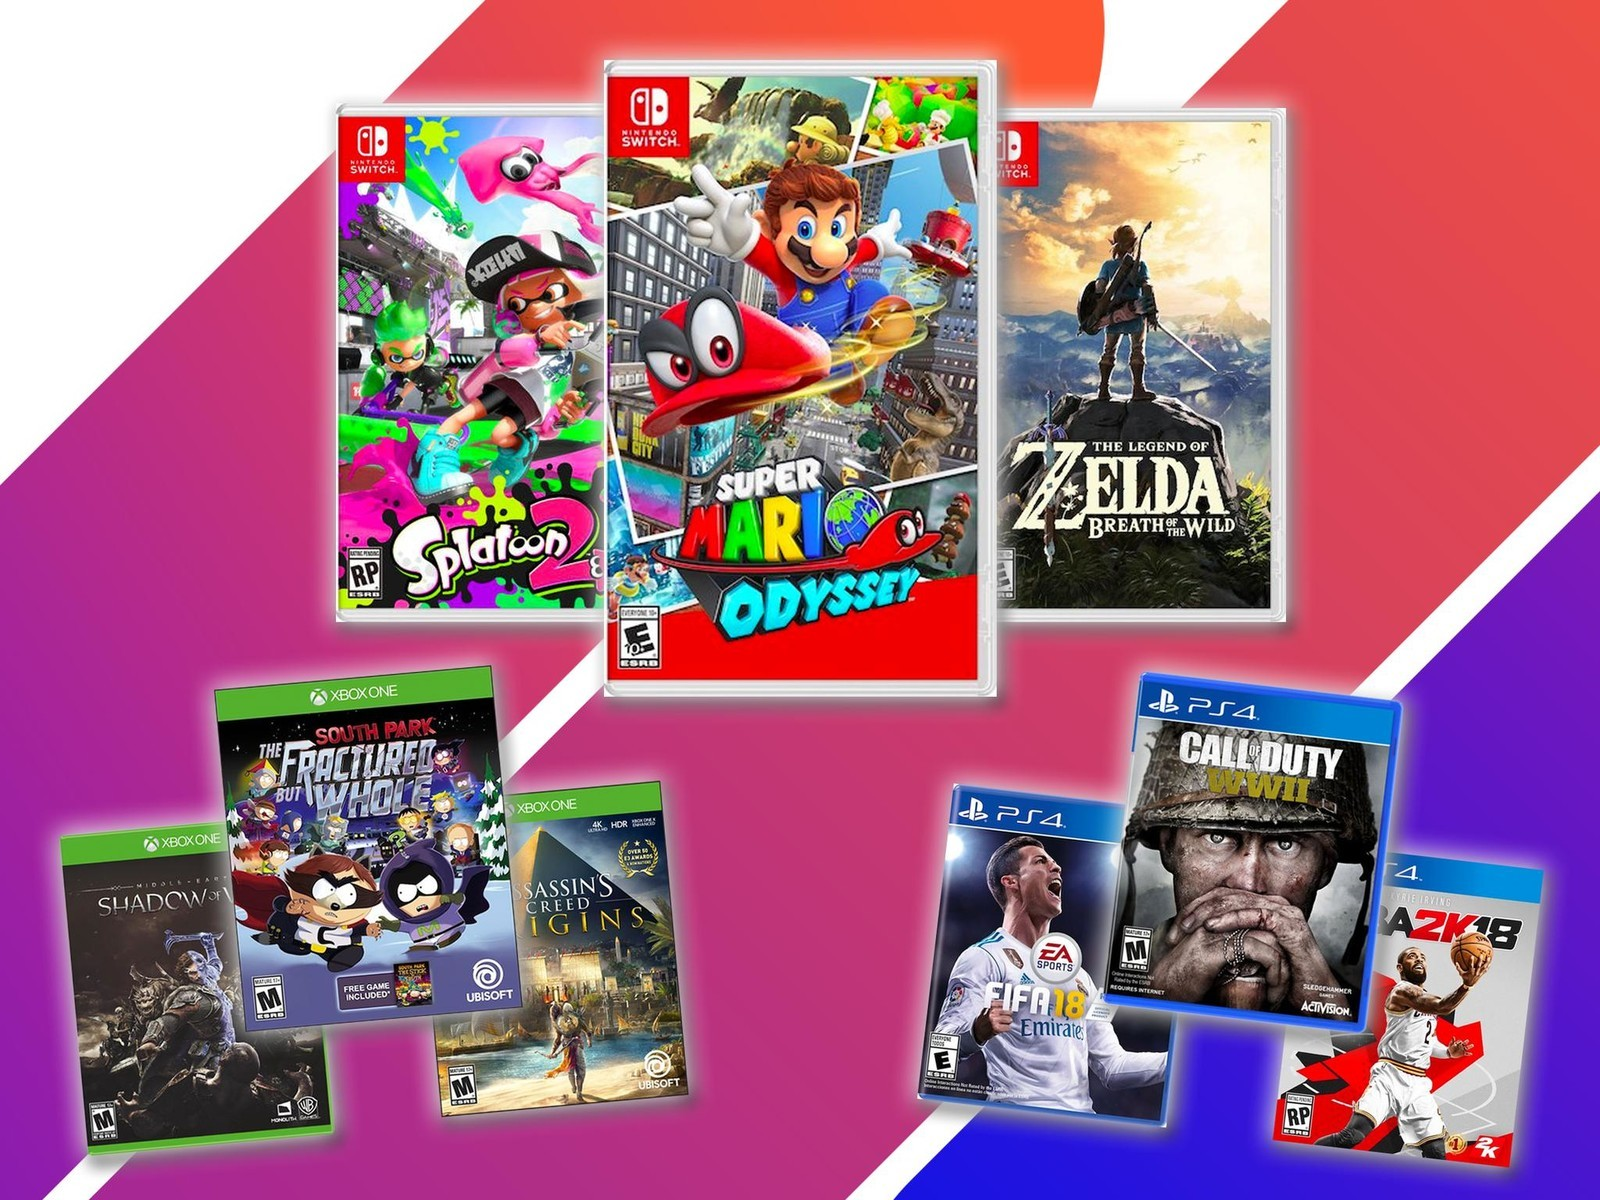 Buy Any Video Game At Toys R Us Get Another For 40 Off Imore